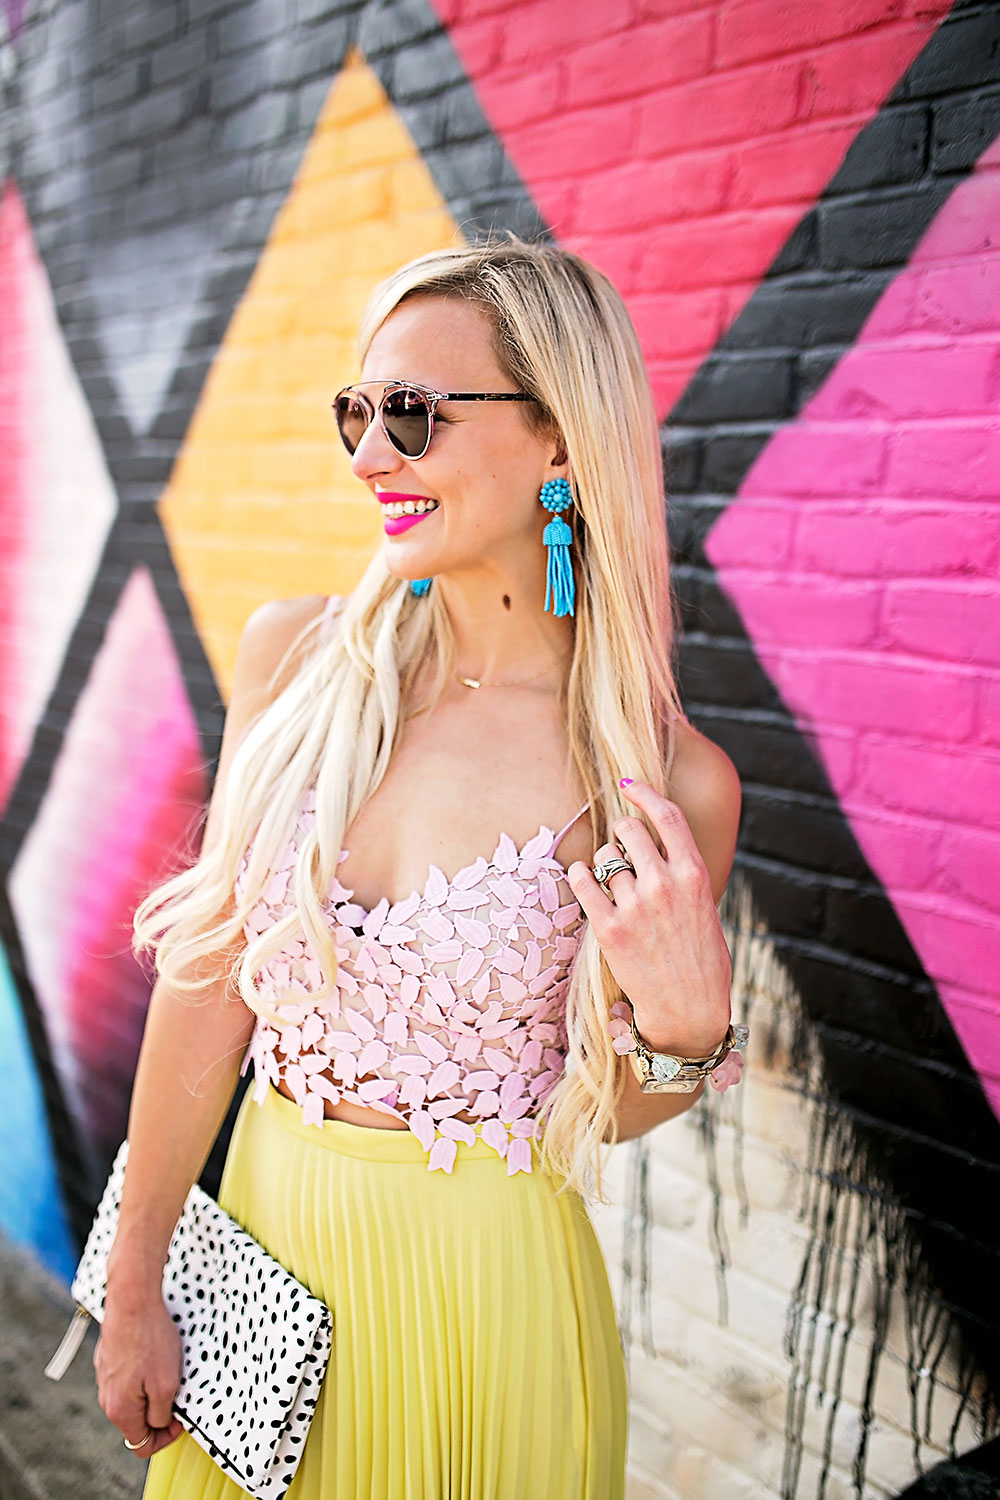 vandi-fair-dallas-fashion-blog-lauren-vandiver-southern-texas-travel-blogger-color-colorful-nordstrom-topshop-chiffon-pleated-midi-skirt-neon-yellow-bardot-flora-lace-crop-top-5